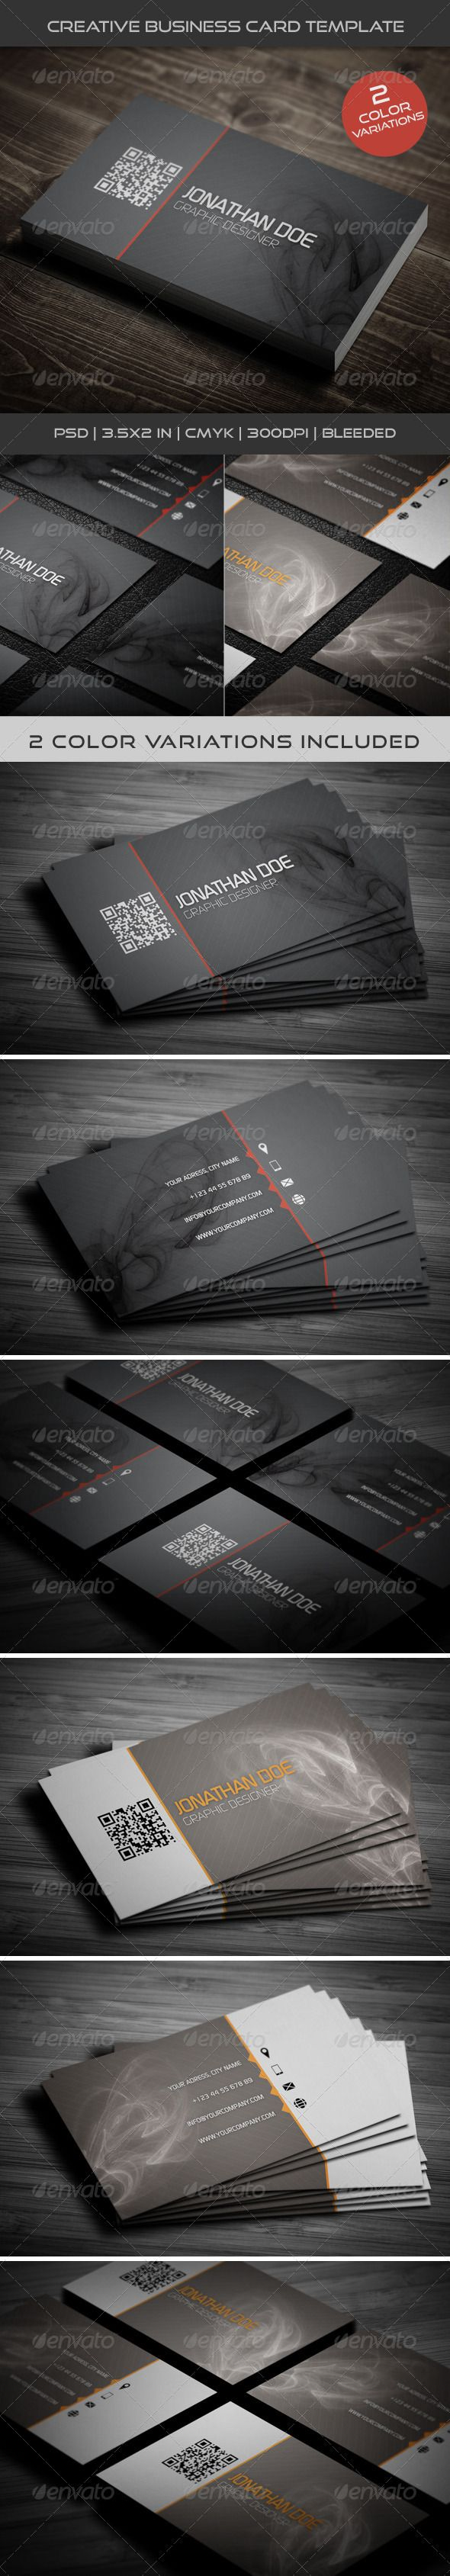 15 best buisness cards images on Pinterest | Business card design ...